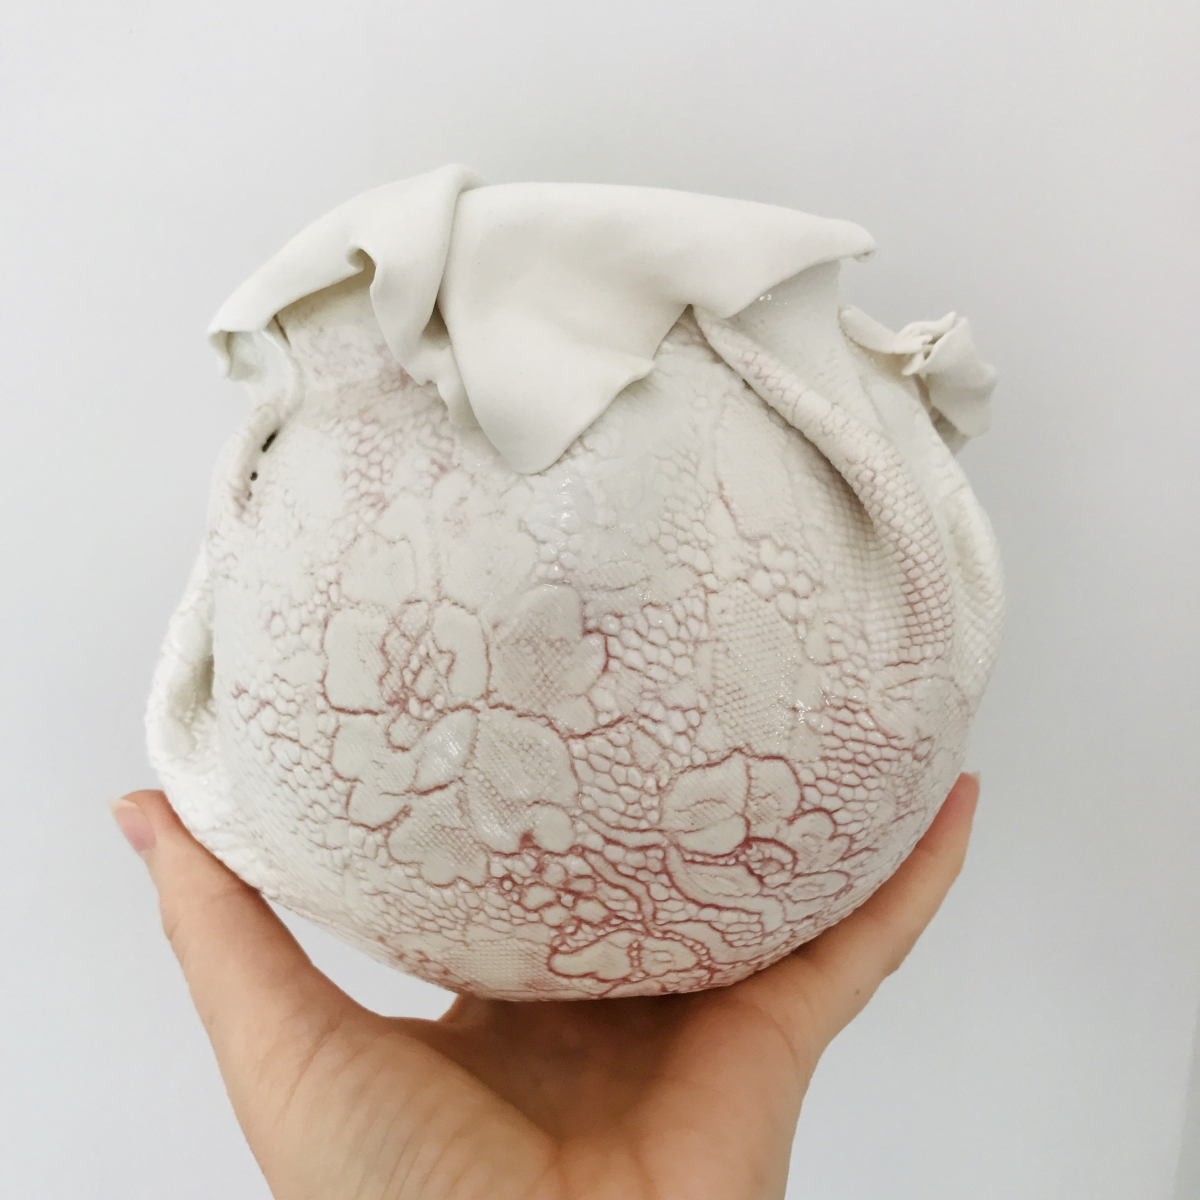 Porcelain Nest with Rose Glaze Detail by Sonya Ceramic Art